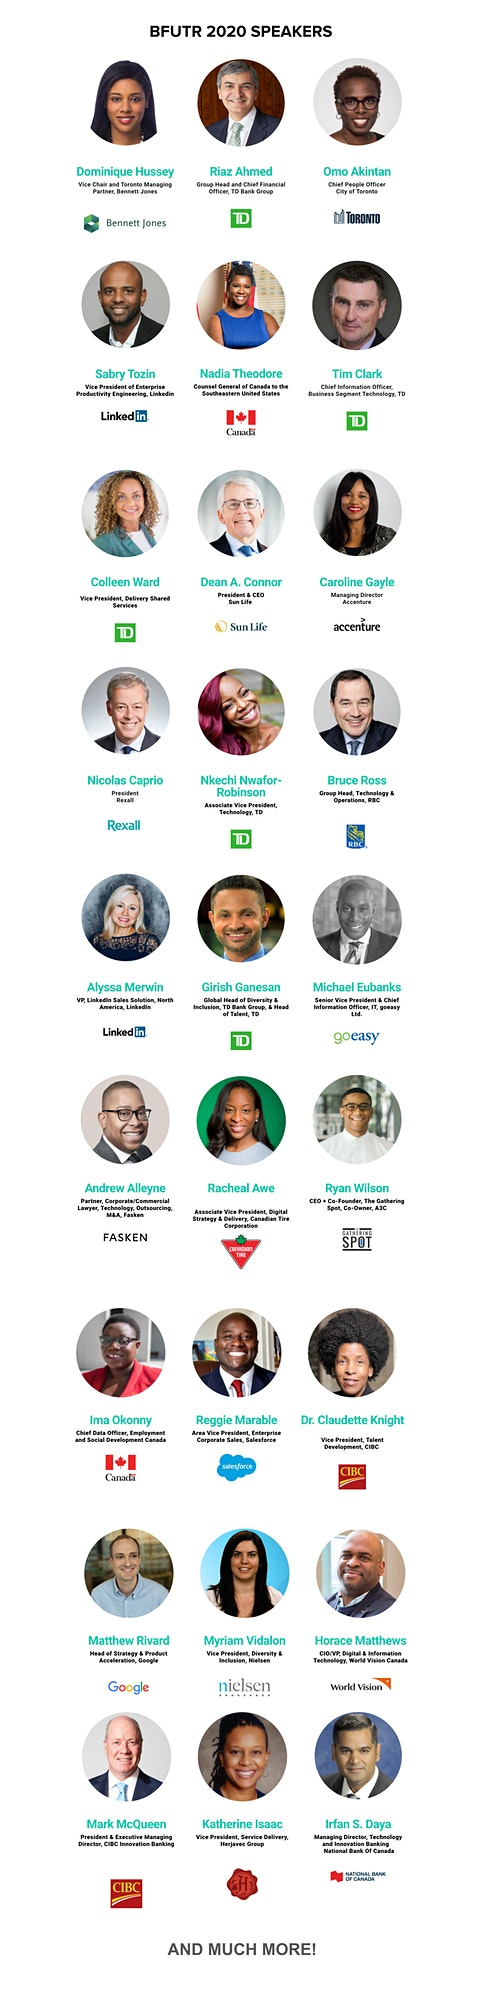 BFUTR 2020 (Virtual Experience) Tech Summit - Presented by TD image